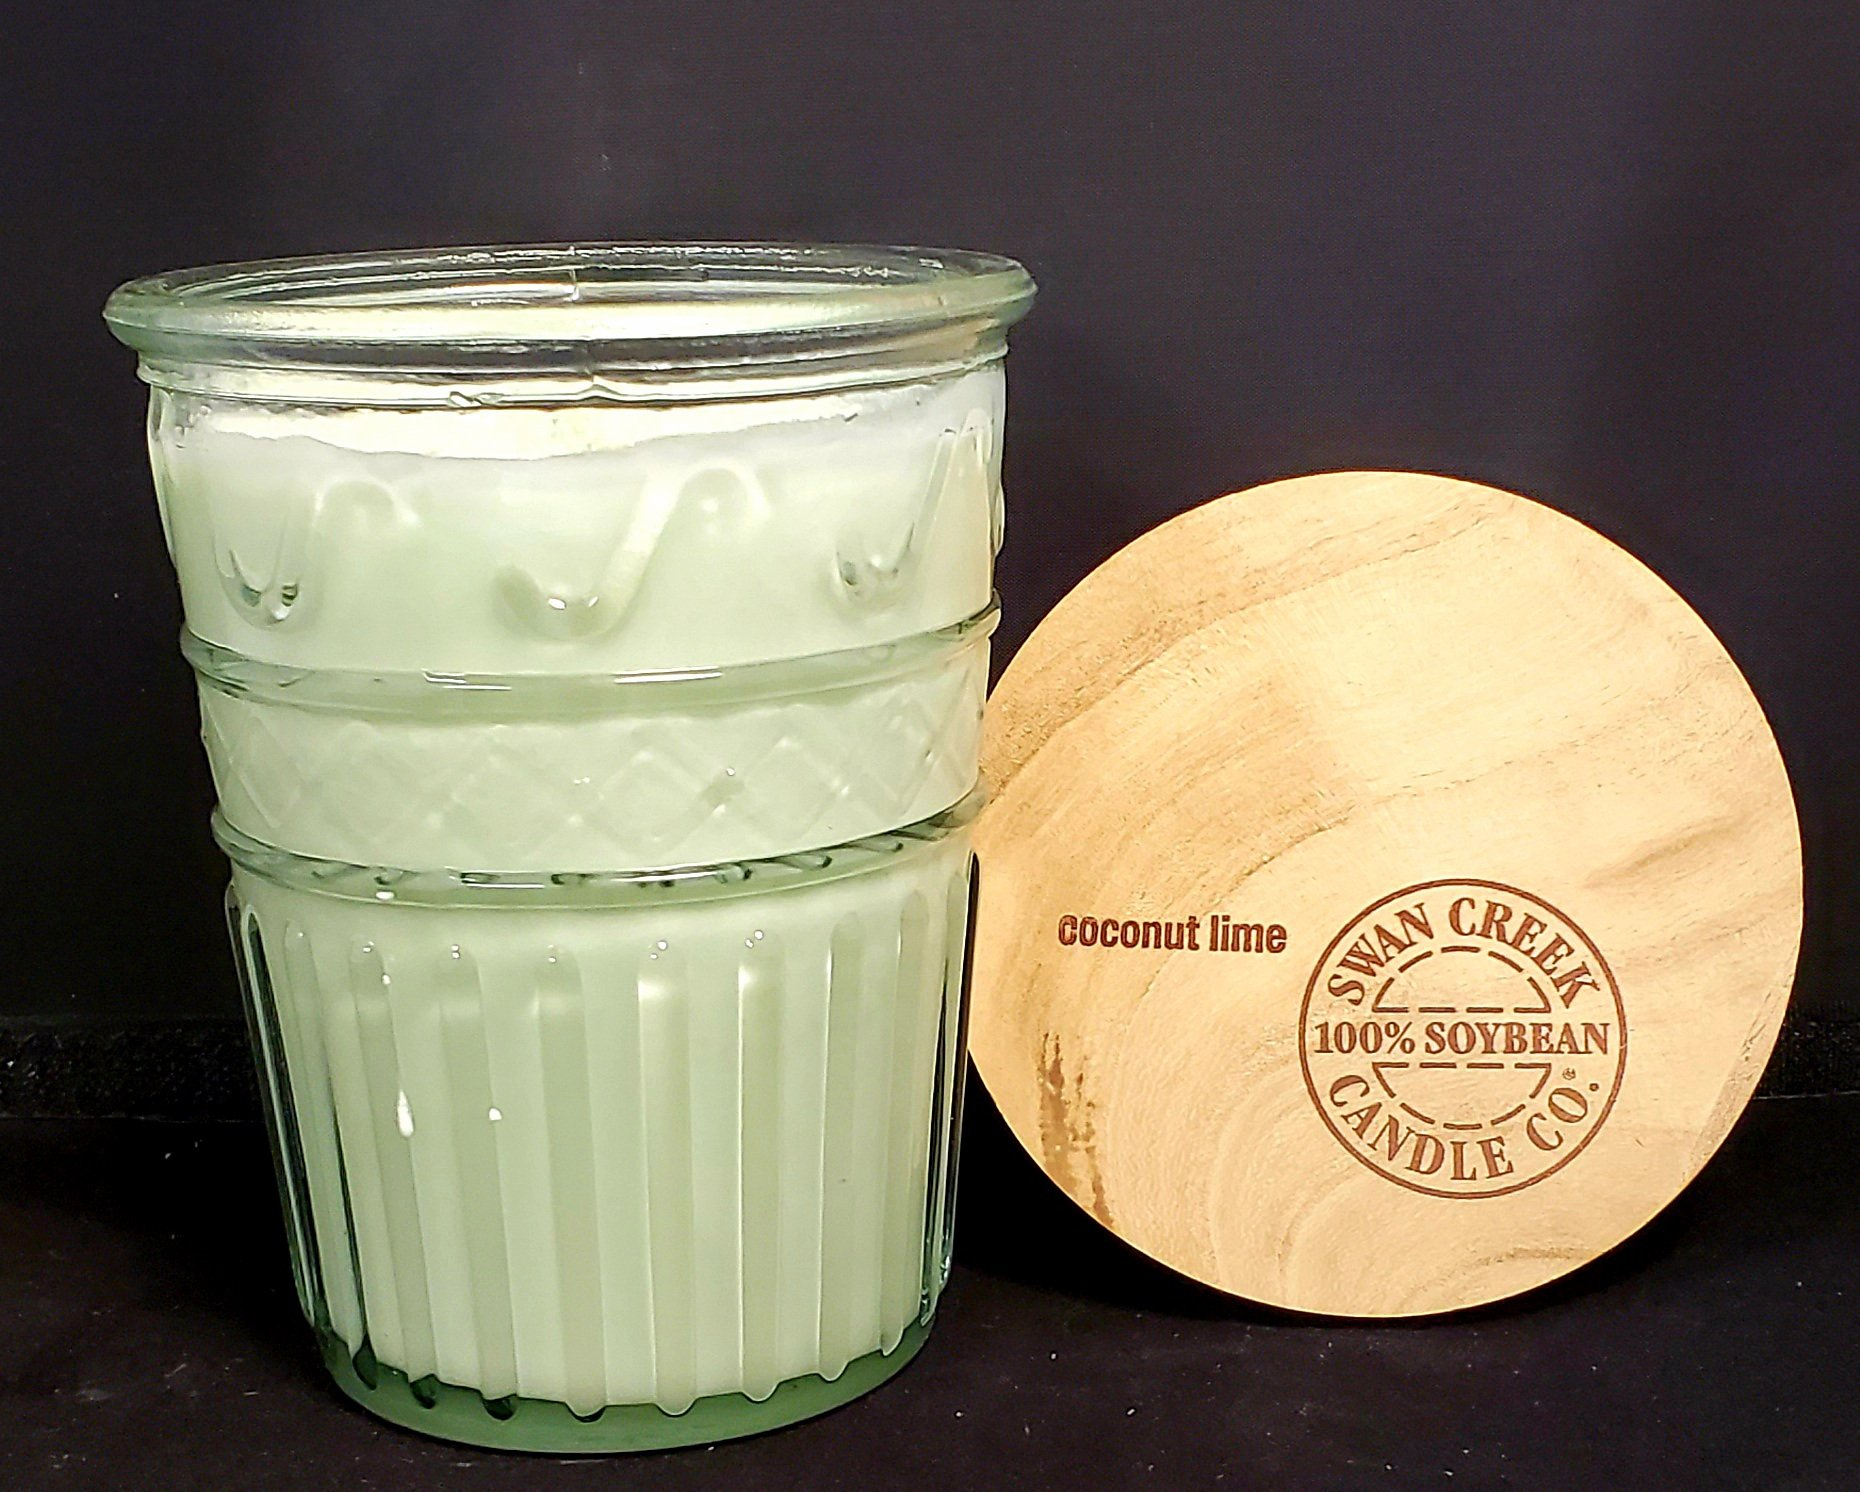 Swan Creek Candles Timeless Jar - Coconut lime